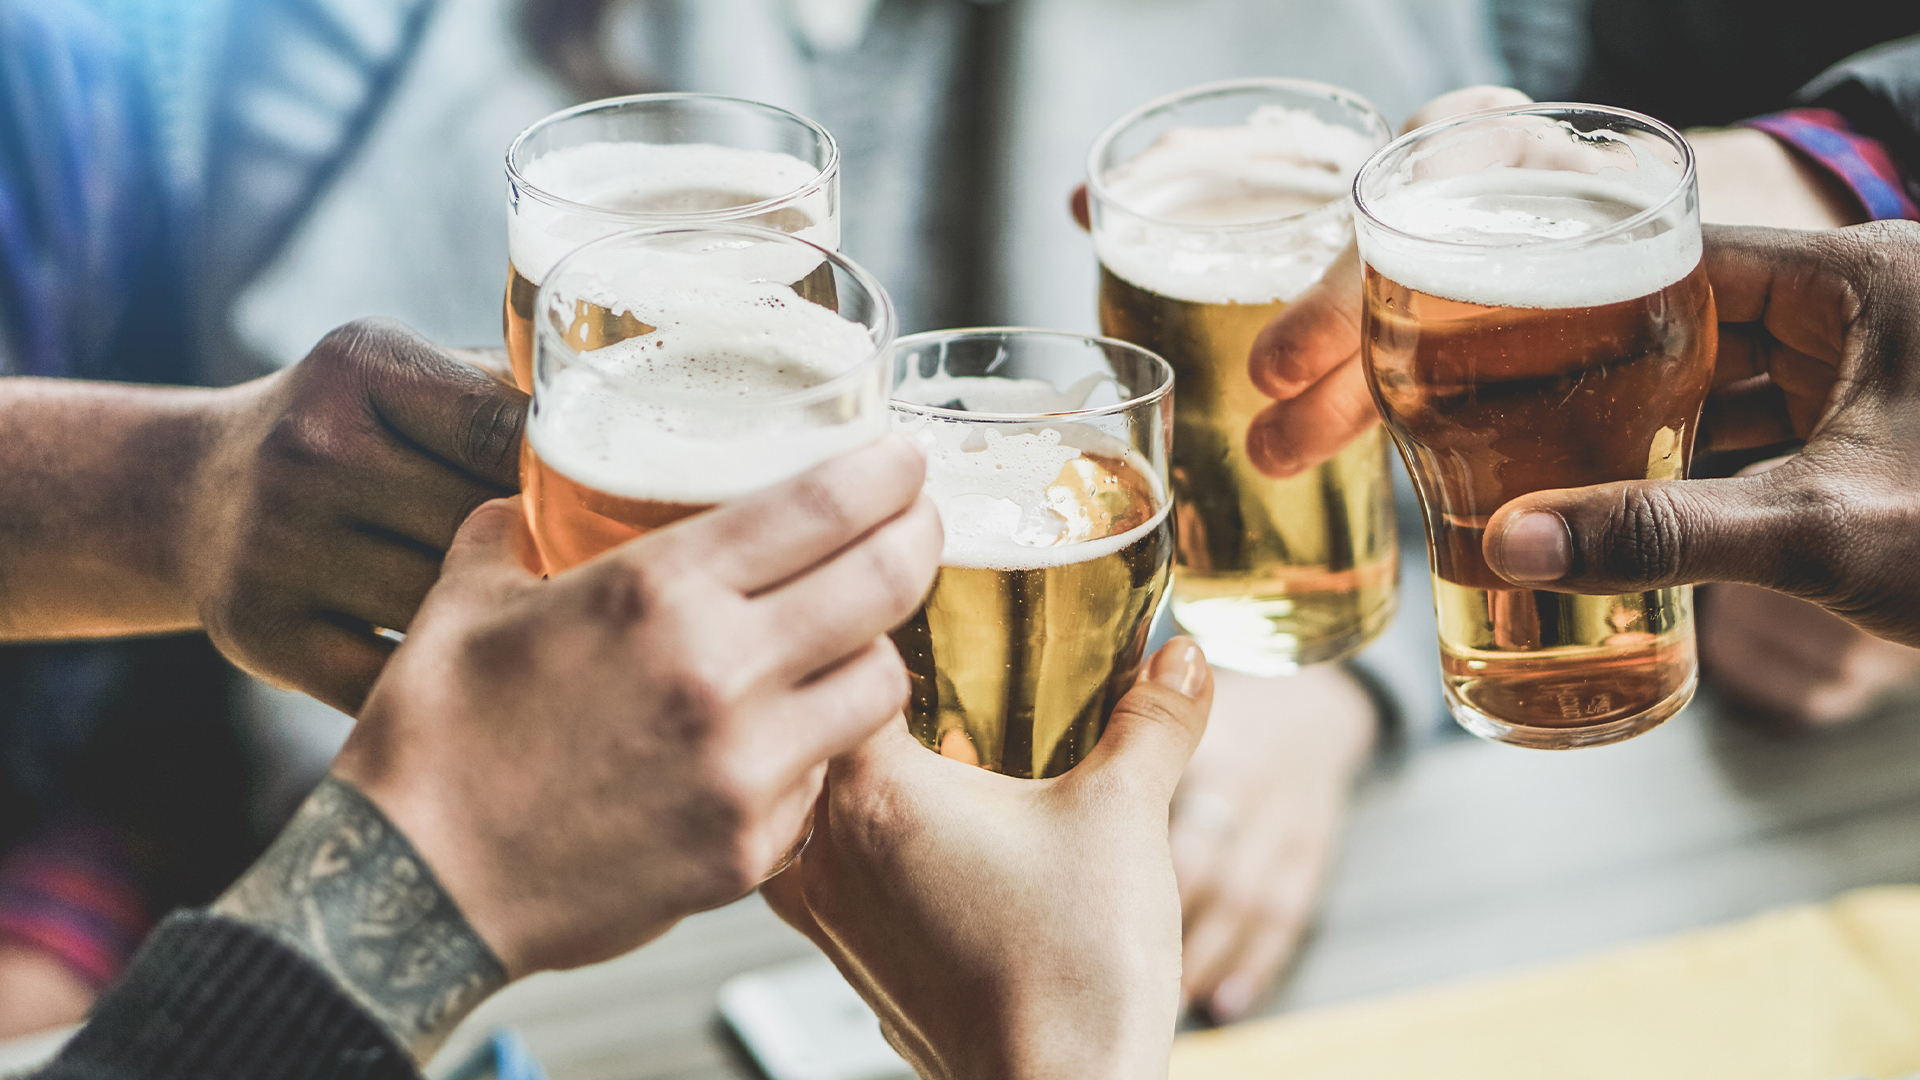 Cheers-party-beer-celebration